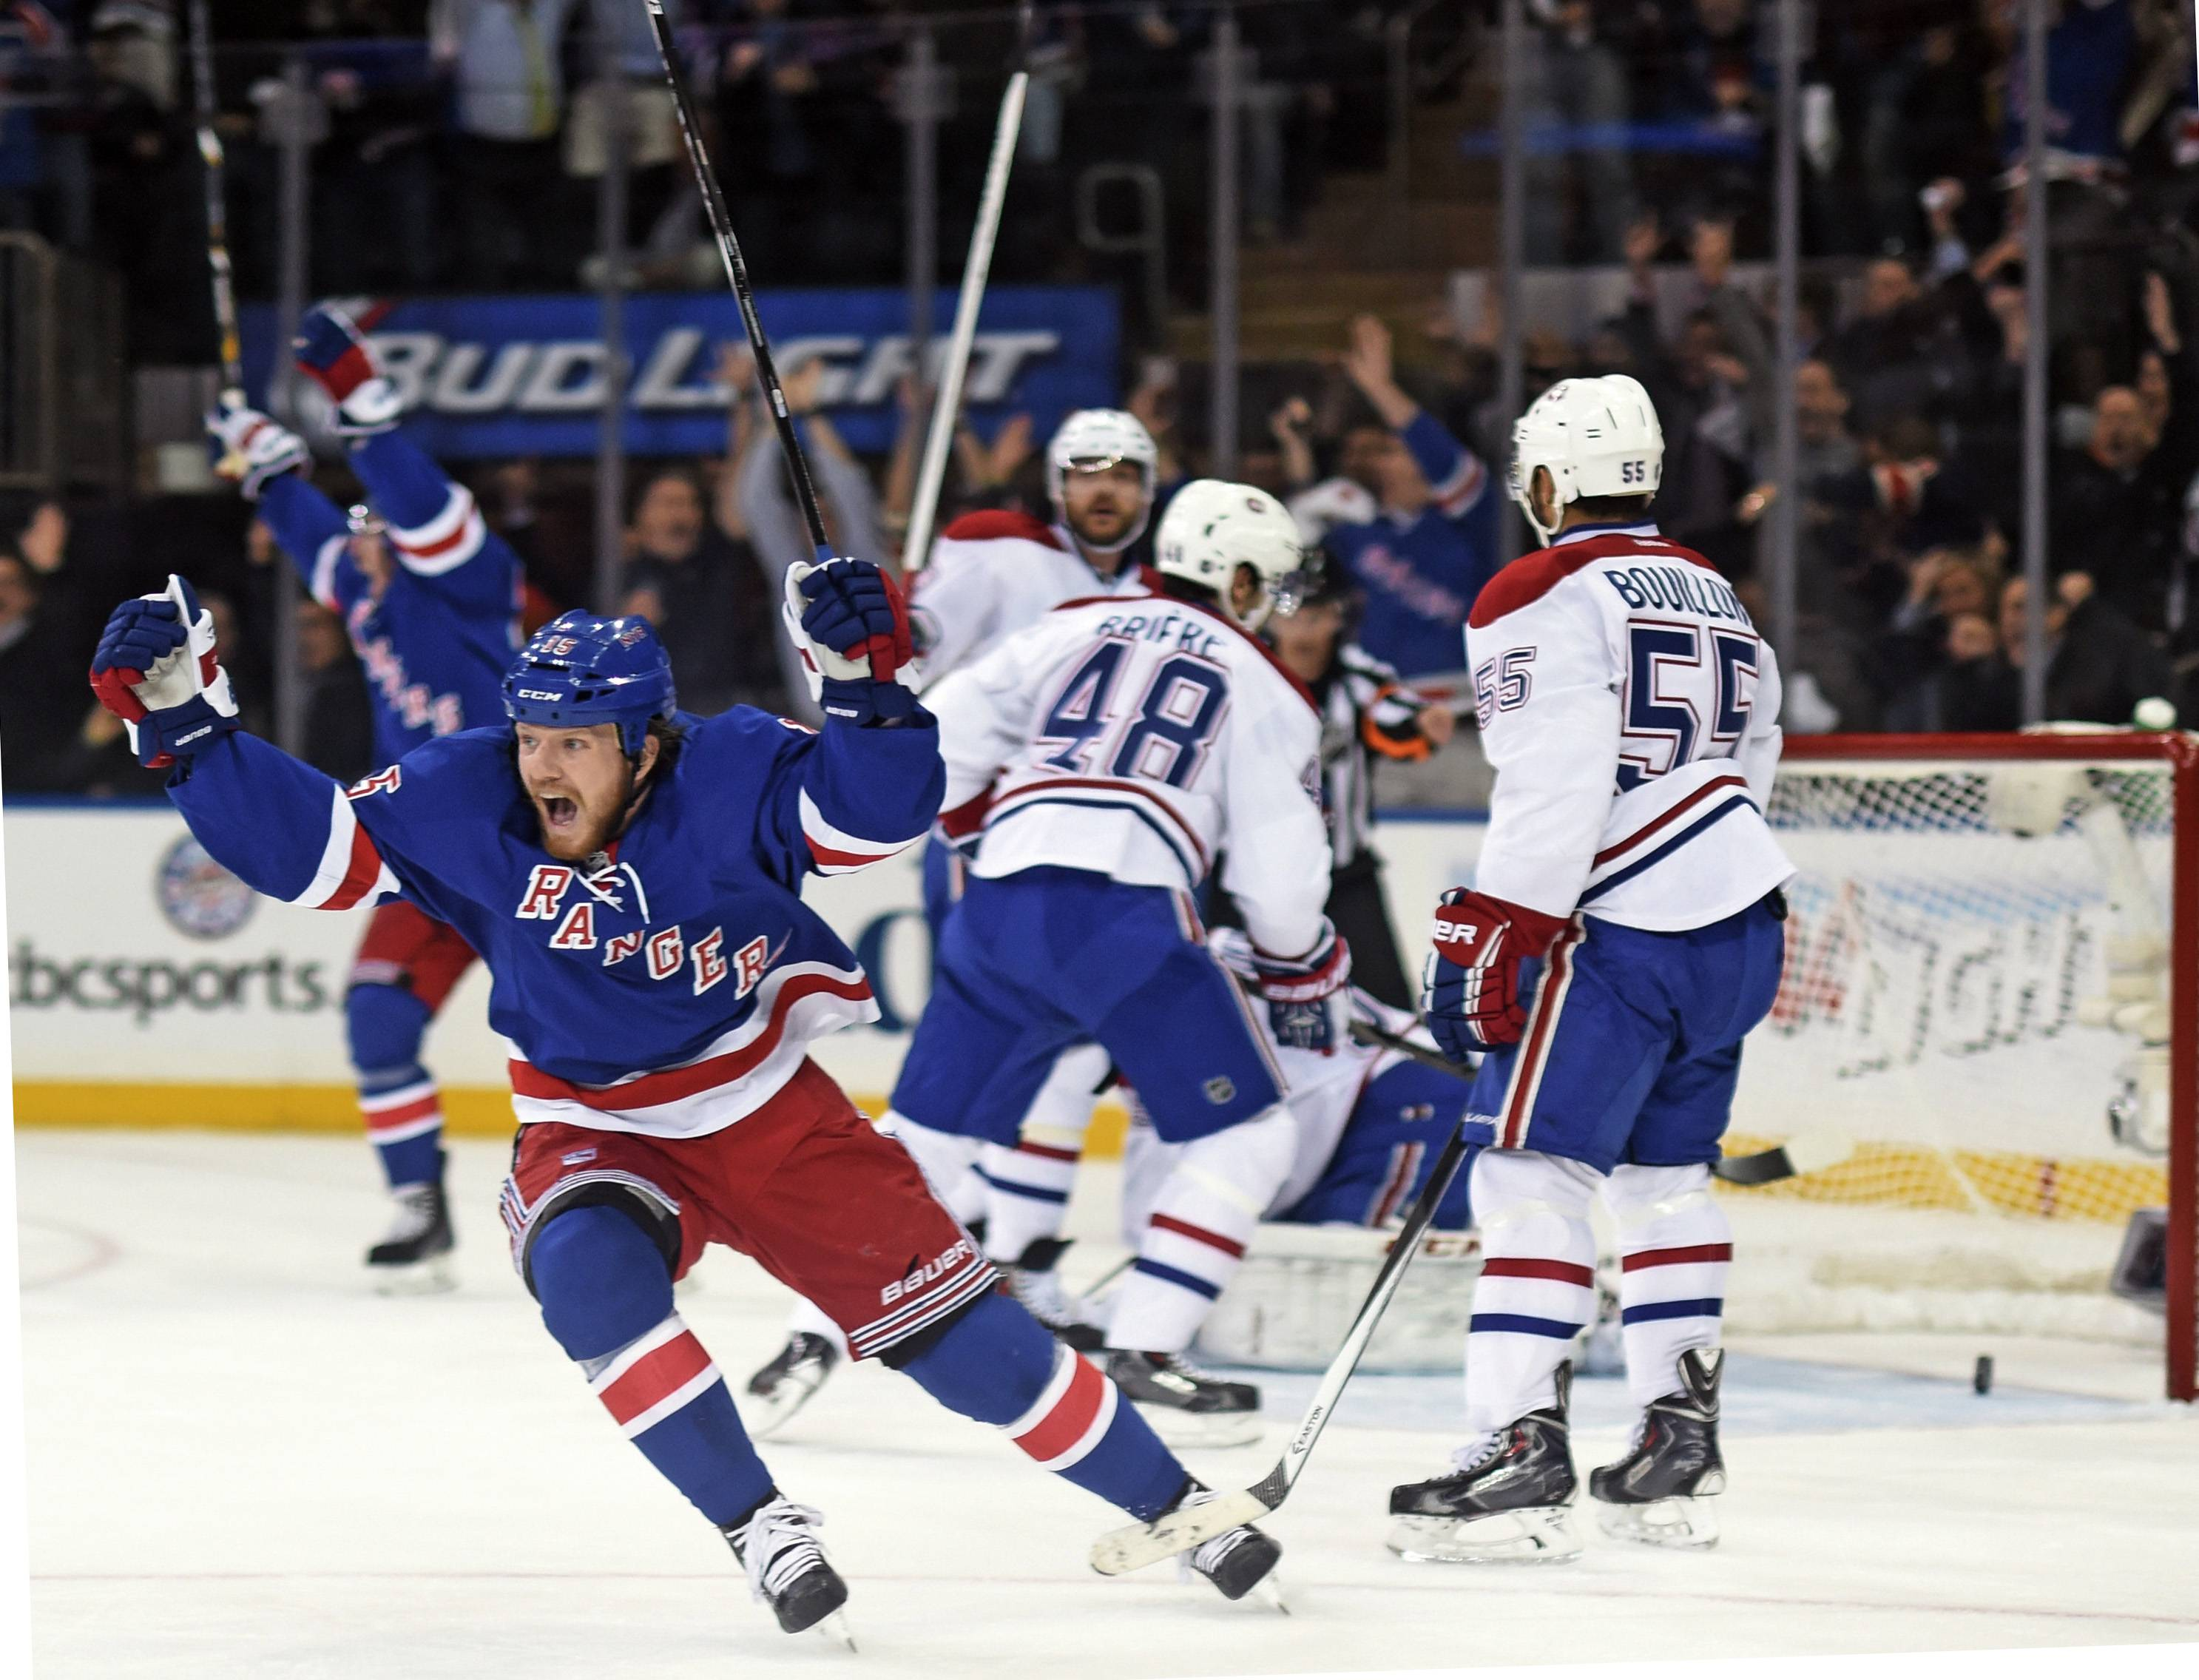 Eight months ago, first-year Rangers coach Alain Vigneault could never have imagined he would now be behind the bench for New York's first Stanley Cup finals appearance in 20 years. The mere suggestion made him laugh Thursday night after the Rangers advanced with a 1-0 victory over the Montreal Canadiens in Game 6 of the Eastern Conference finals,